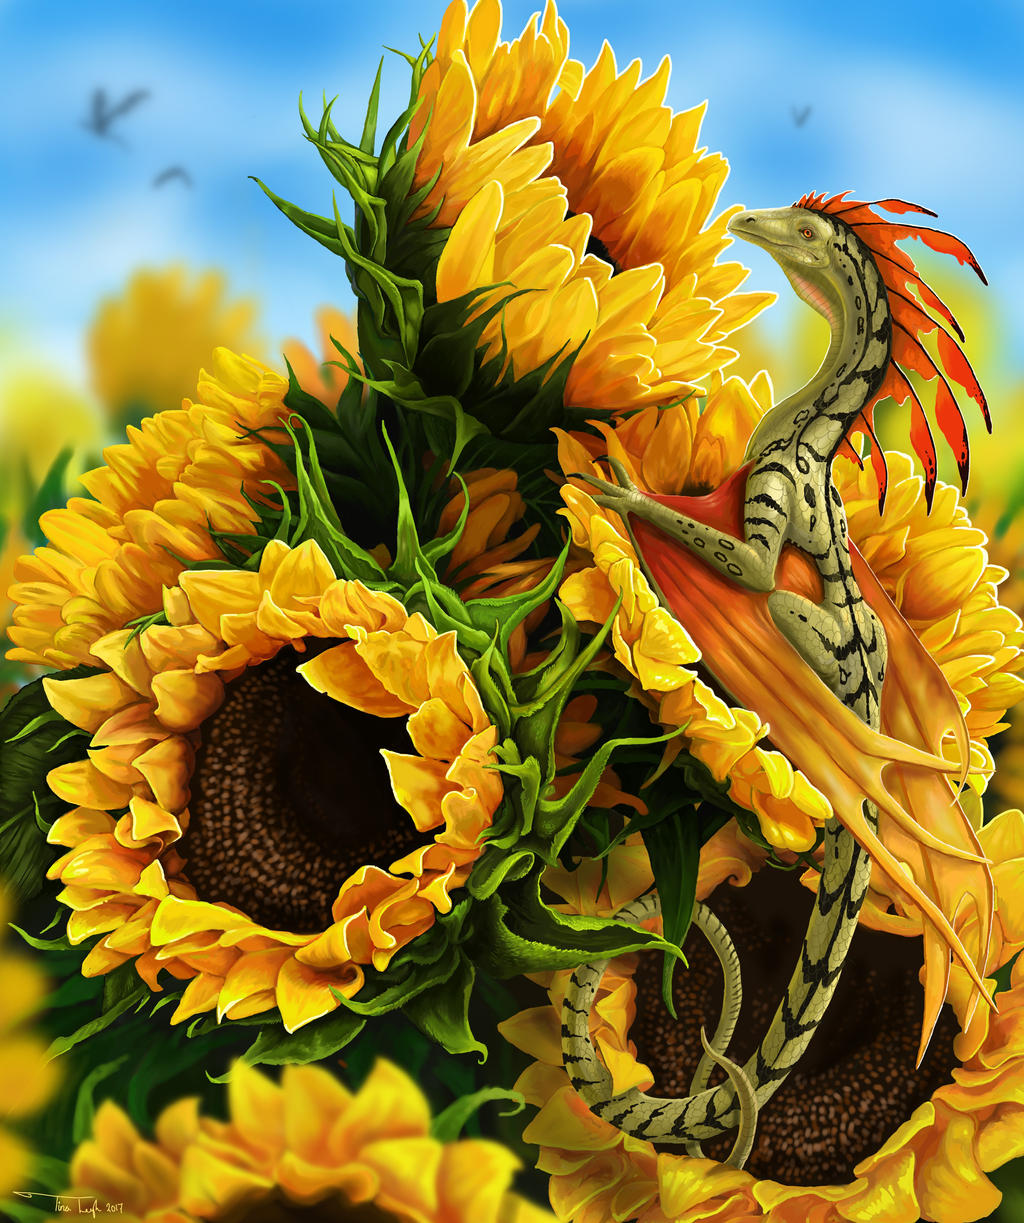 Sunflowers by jaxxblackfox